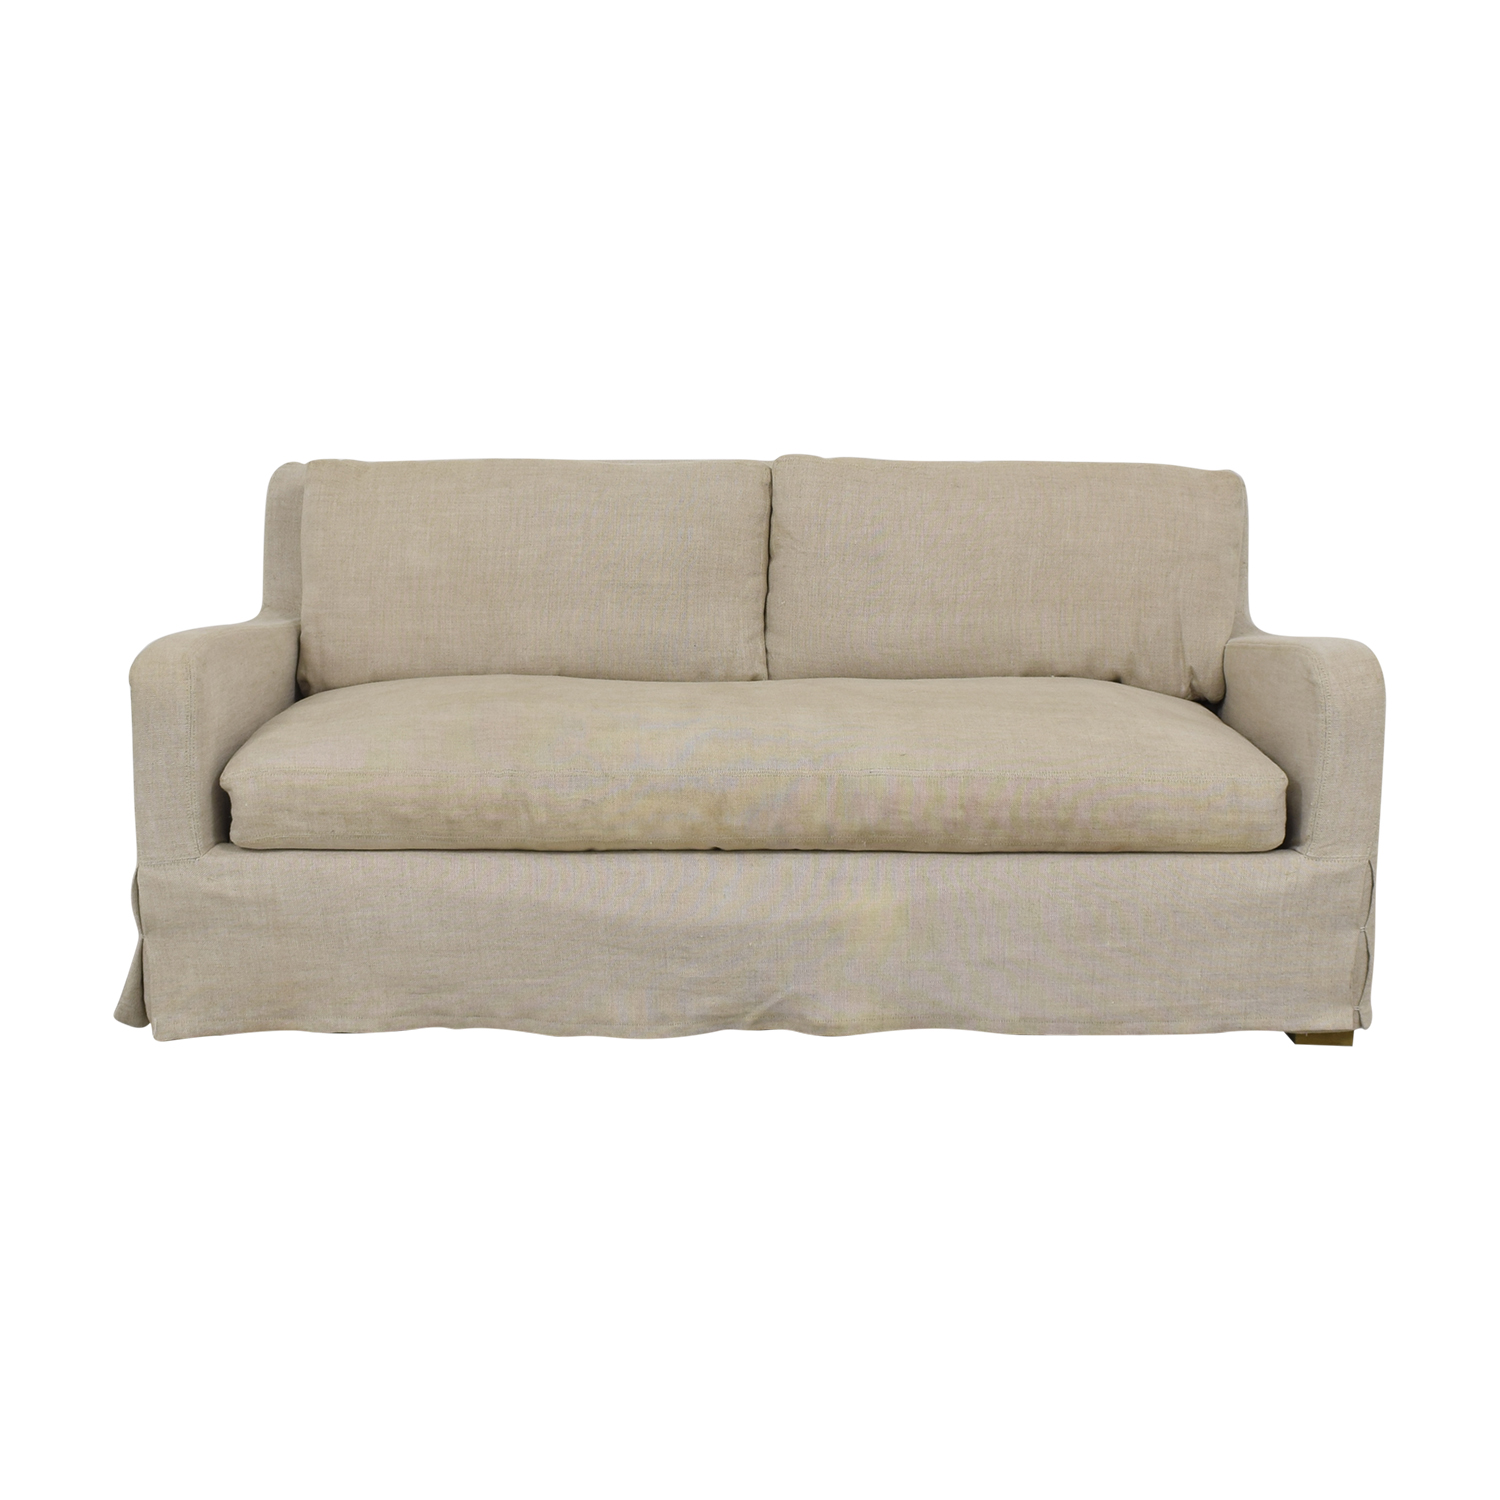 buy Restoration Hardware Belgian Slope Arm Slipcover Sofa Restoration Hardware